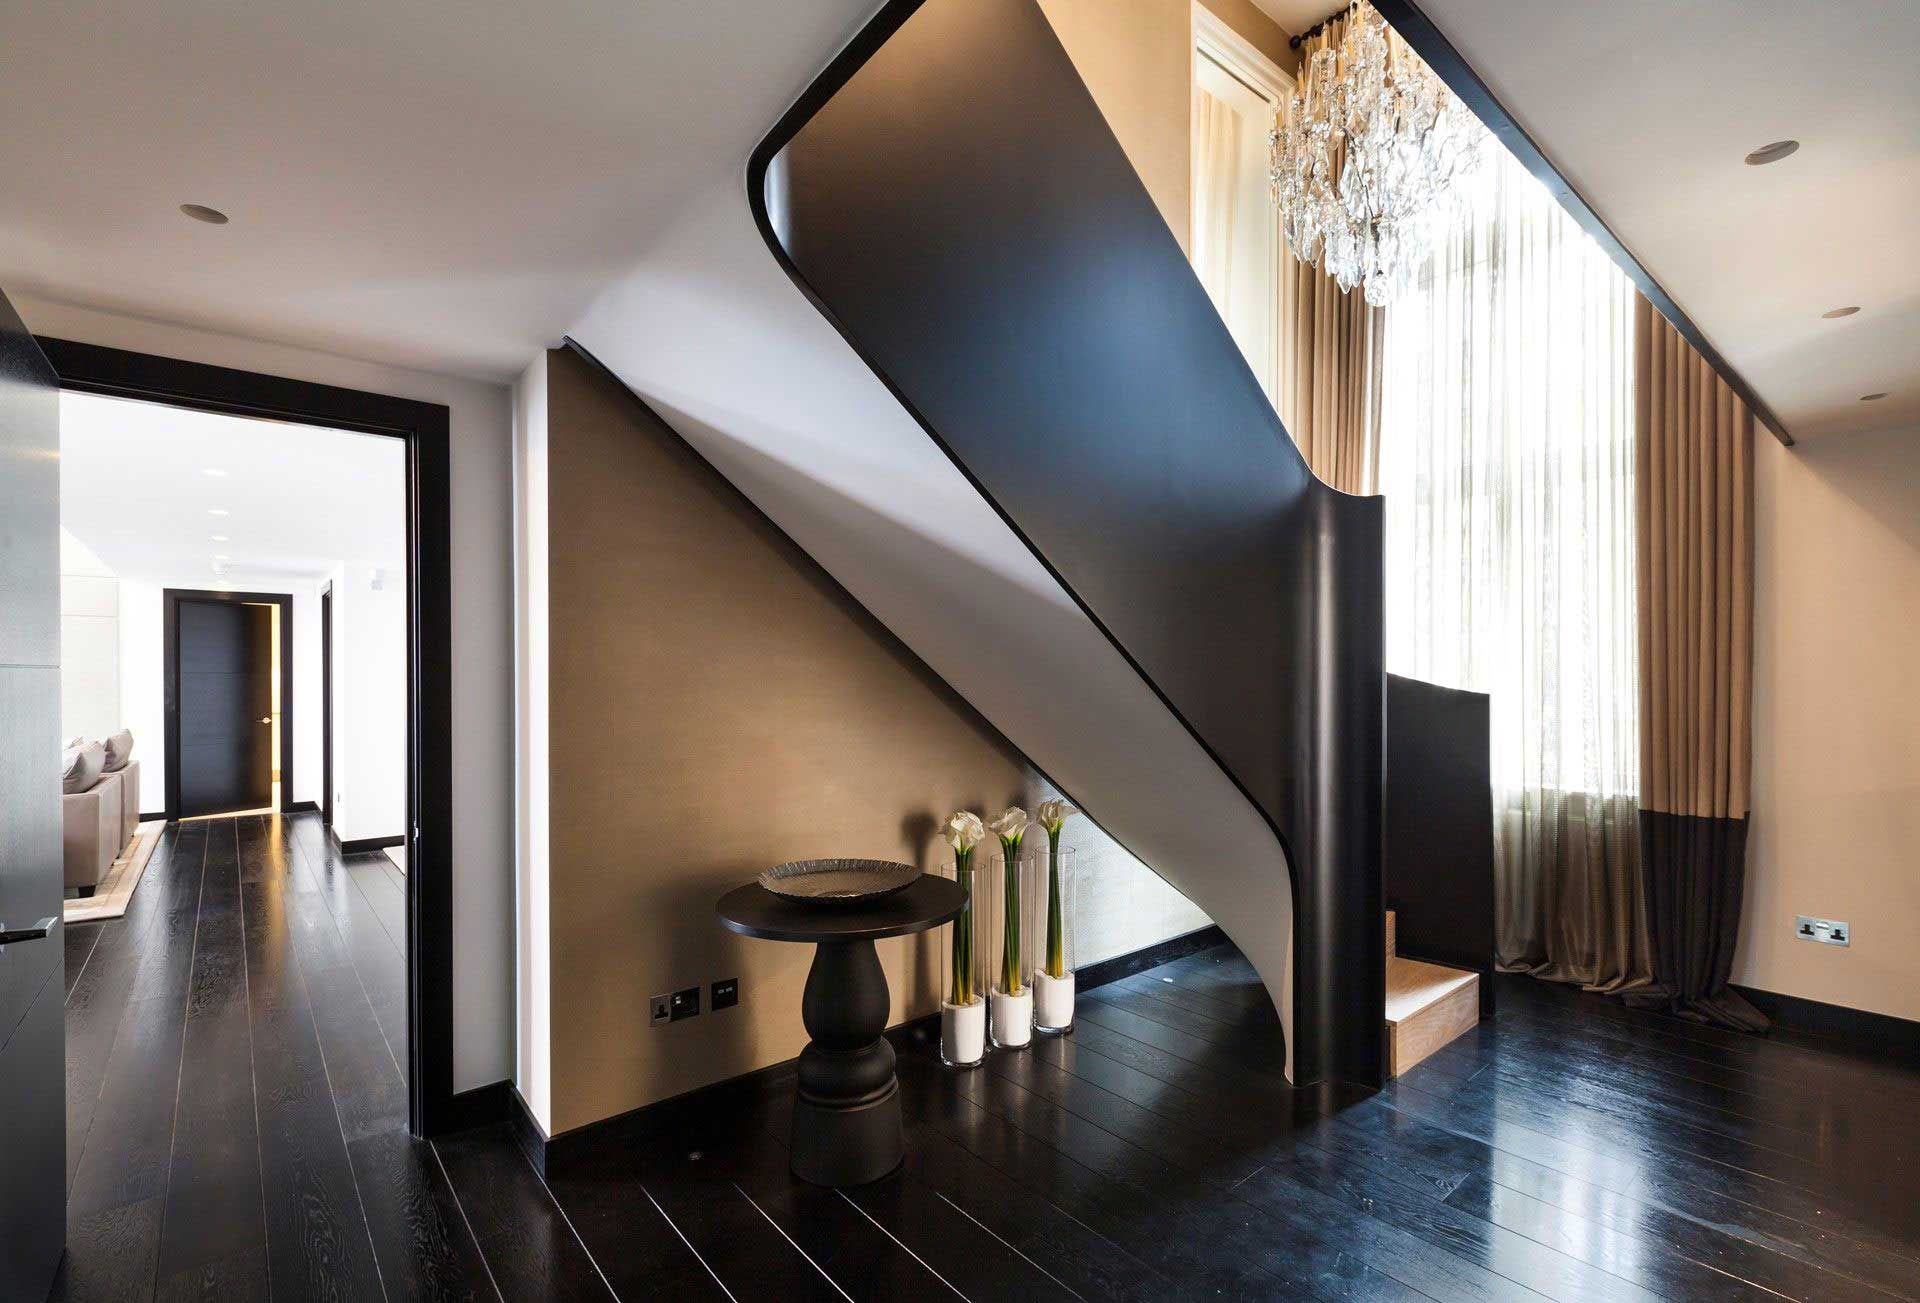 Contemporary Chic London Apartment by Kelly Hoppen Interiors   http://www.caandesign.com/contemporary-chic-london-apartment-kelly-hoppen-interiors/